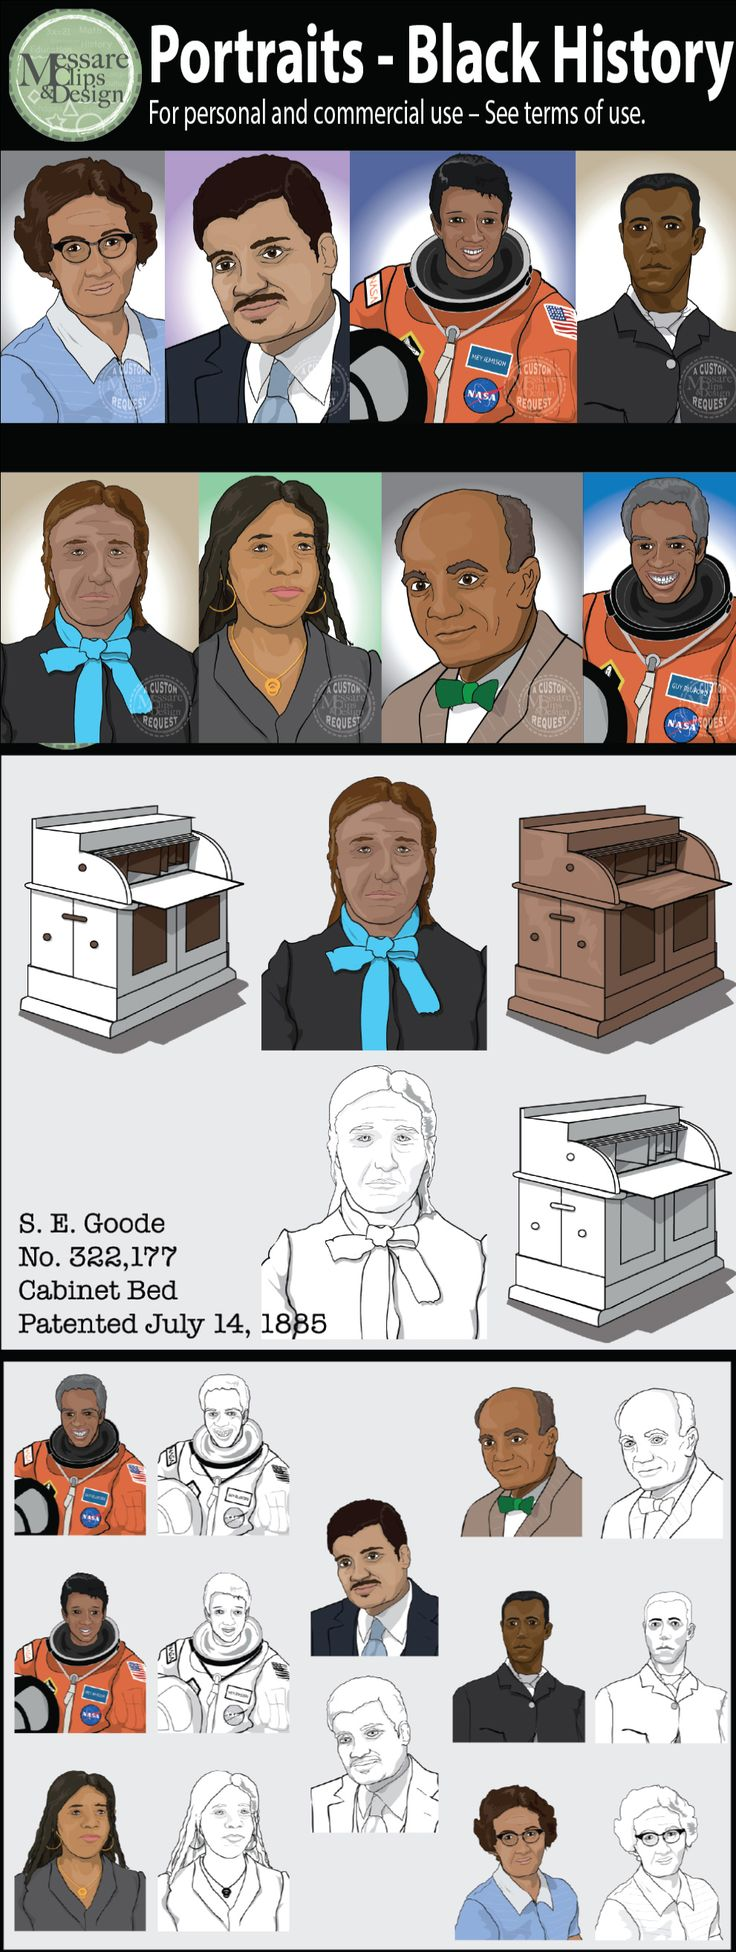 "This custom portrait set of professionals, mathematician, astronauts etc designed to support lessons for Black History Month.  -Sarah Goode - Entrepreneur and inventor & First African American woman to receive a patent -Sarah Goode's -Thomas L. Jennings -David Blackwell - Emeritus of Statistics at the University of California, Berkeley until 2010 -Katherine Johnson  -Neil DeGrasse Tyson - Astrophysicist -Guion ""Guy"" Bluford - NASA  -Dr. Mae Jamison - NASA  -Reva K. Williams"